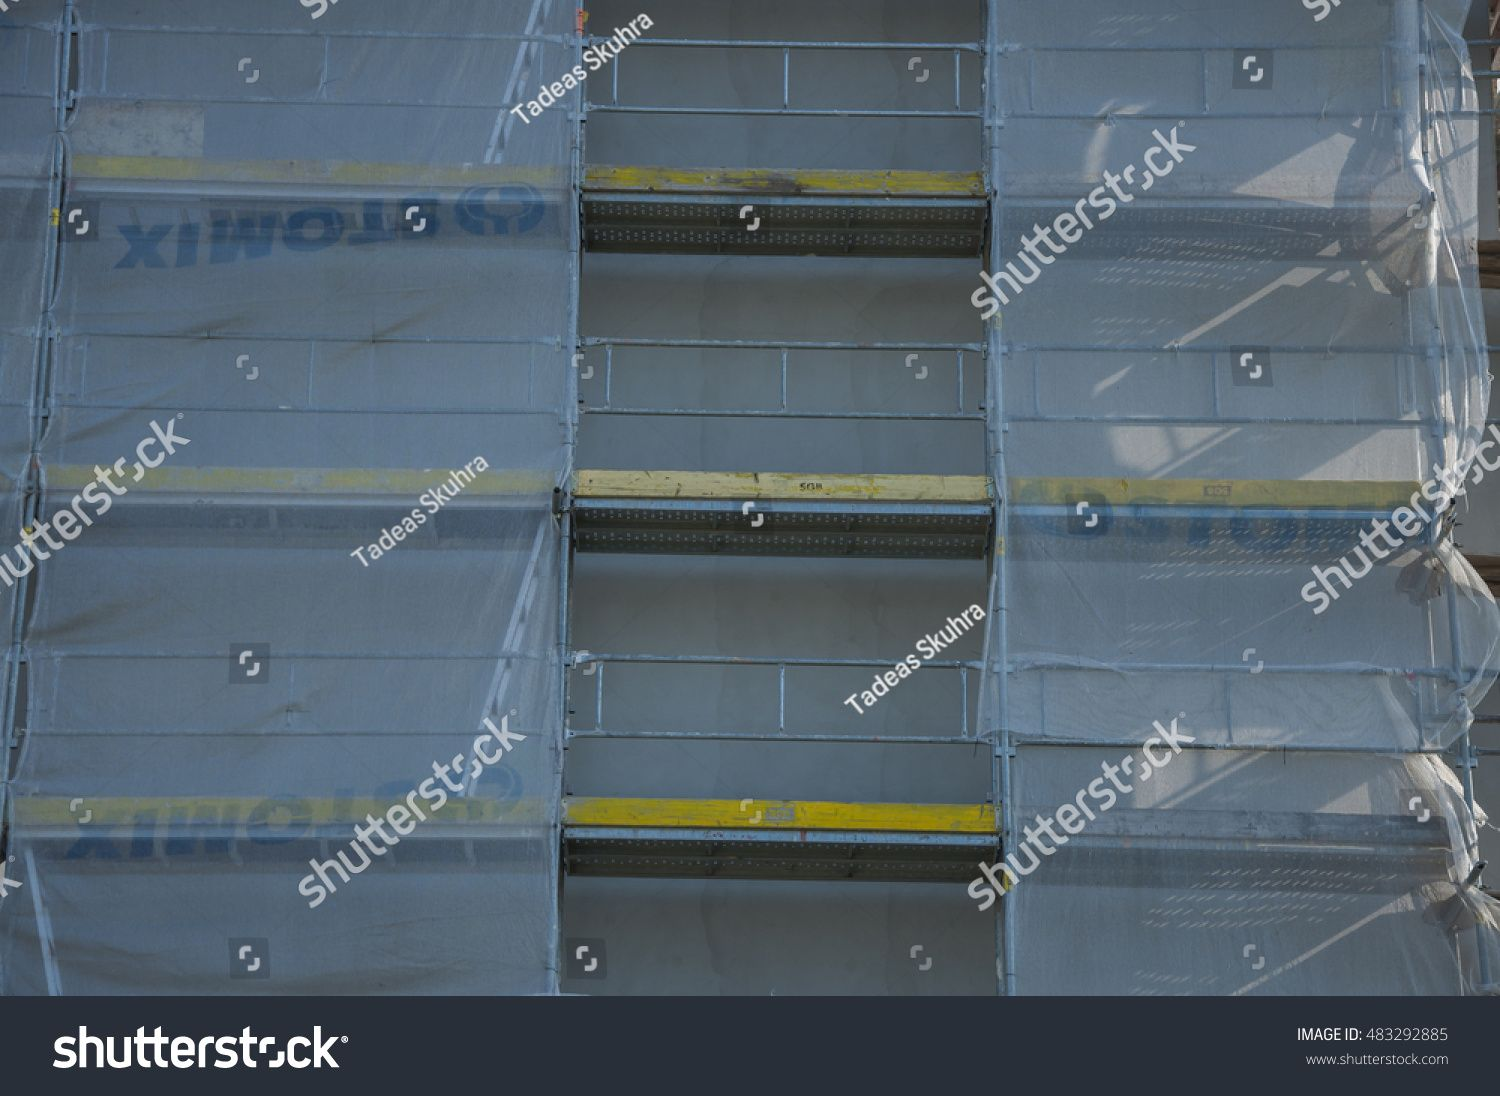 PRAGUE, THE CZECH REPUBLIC, 07.09.2016: Renovating of big house in Prague. Scaffolding on building during insulation #Ad , #Aff, #Renovating#PRAGUE#CZECH#REPUBLIC